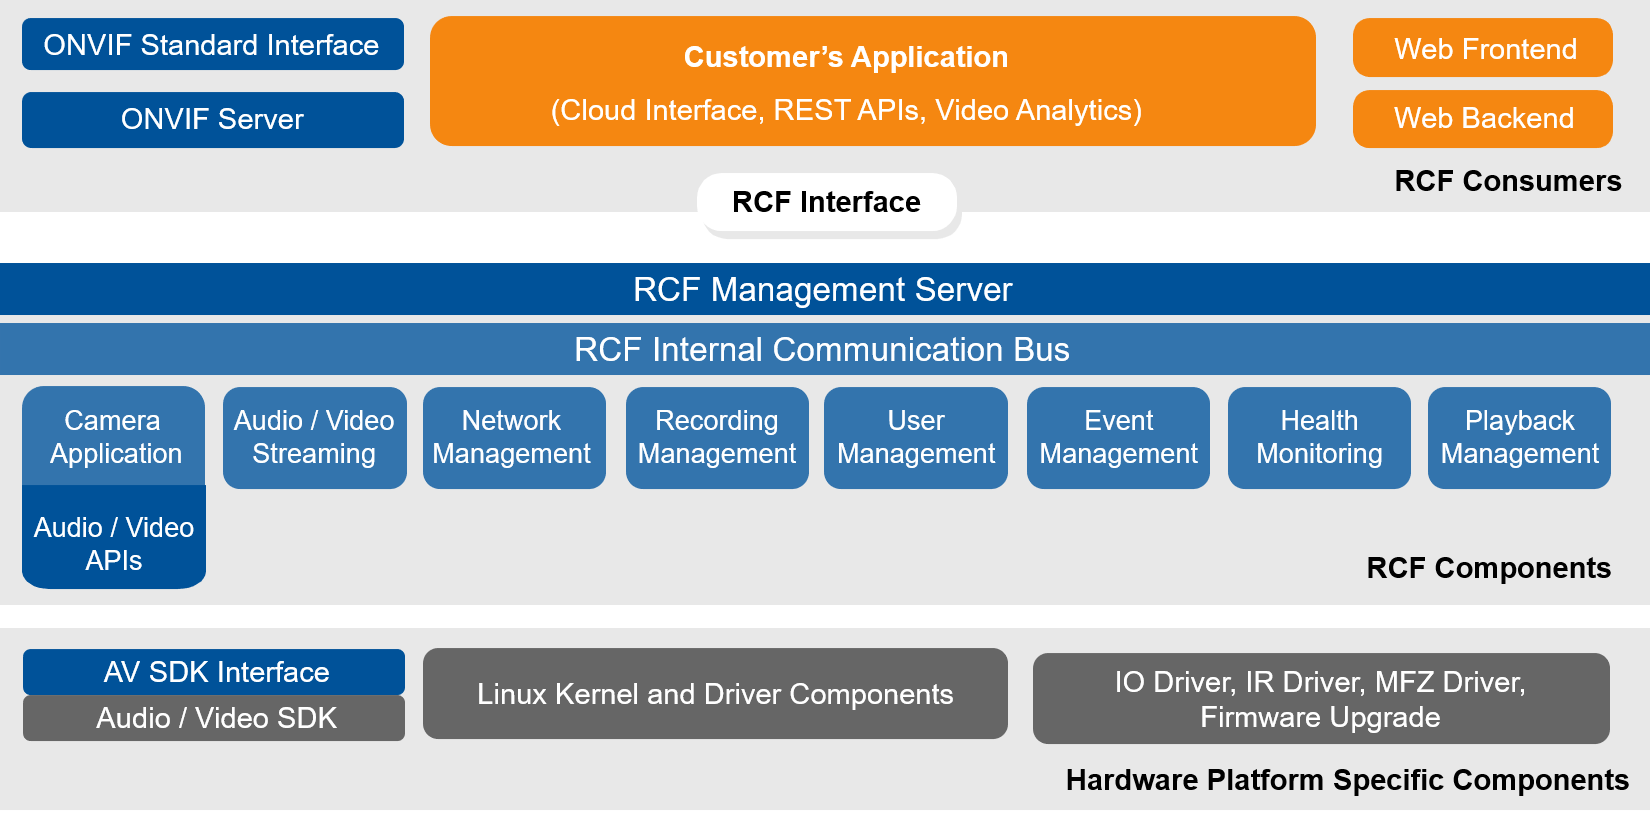 Top-level architecture of the framework